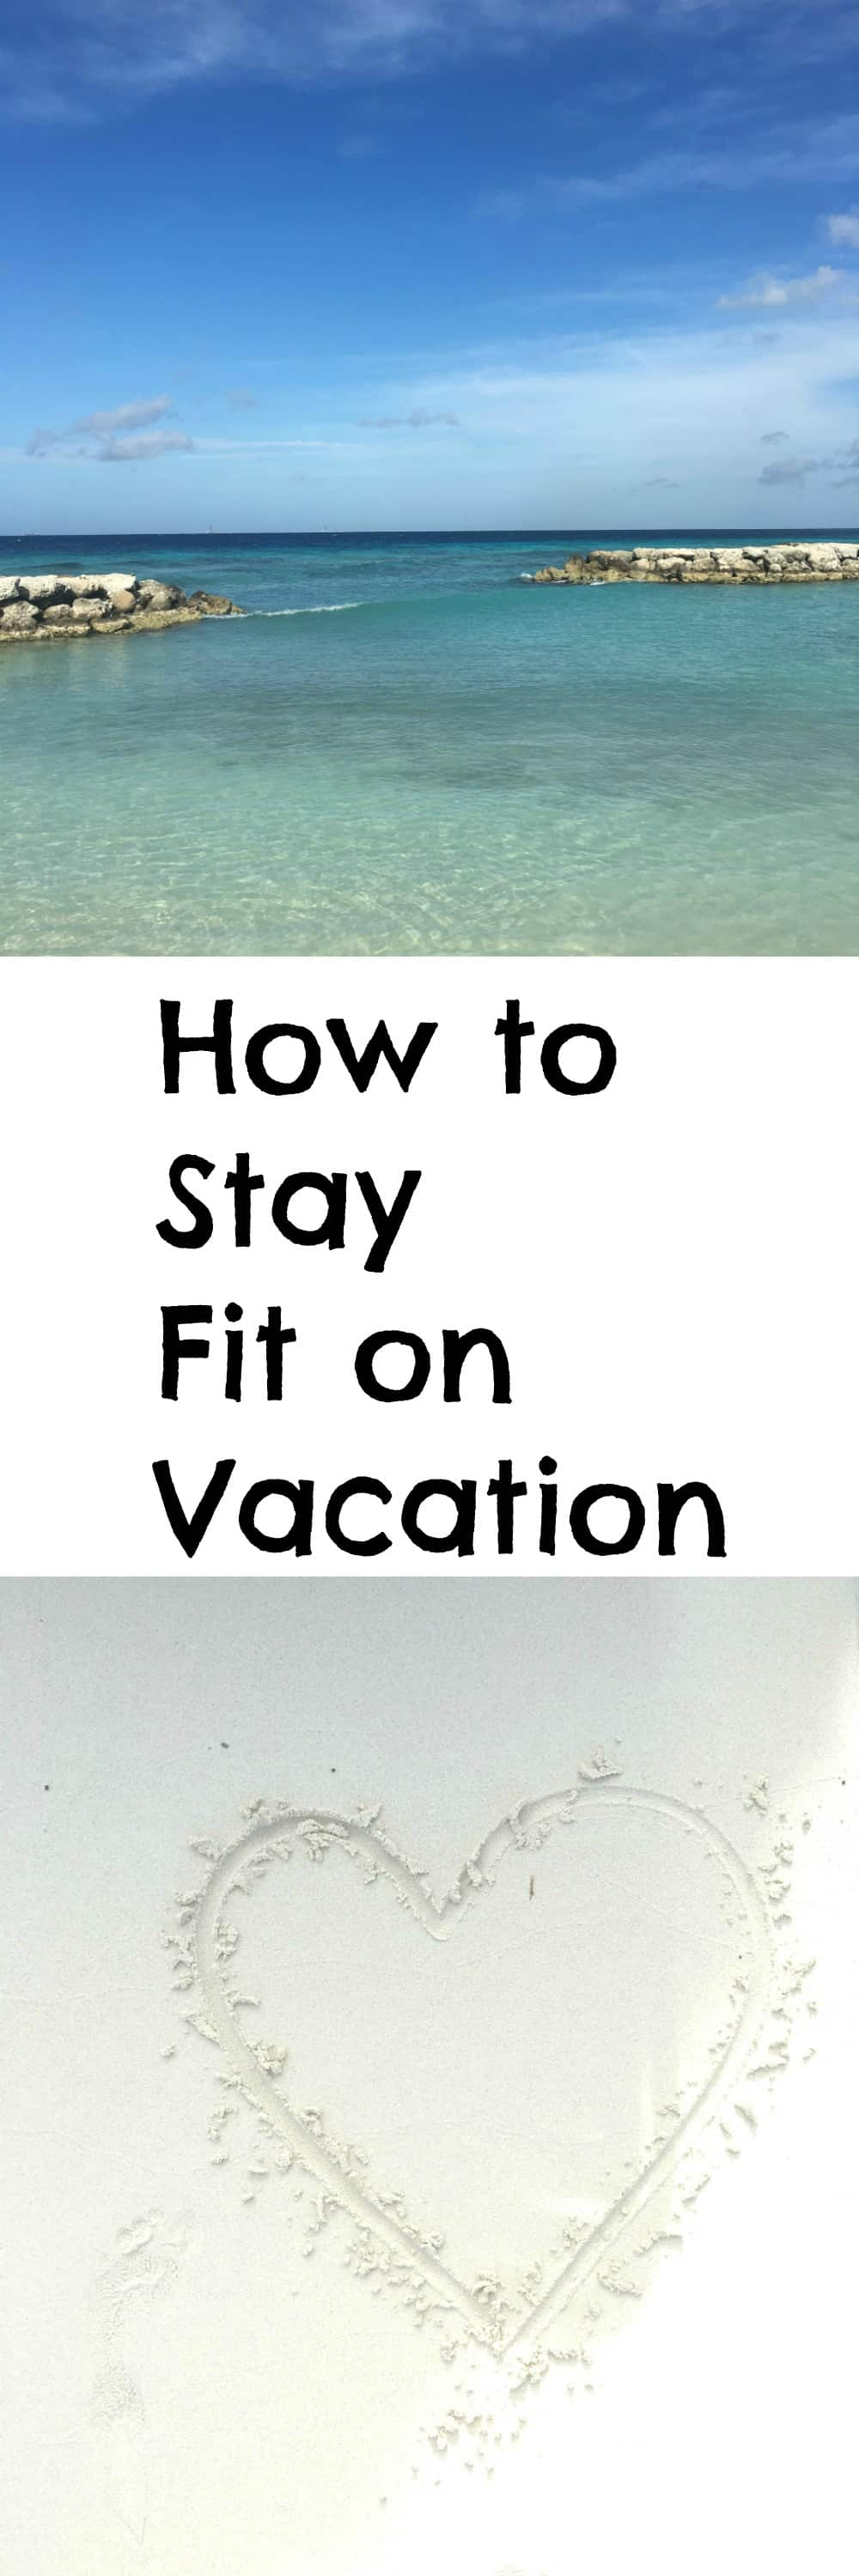 Vacation coming? Here are a few health and fitness tips that will keep you feeling good, happy and in shape! lemonsforlulu.com